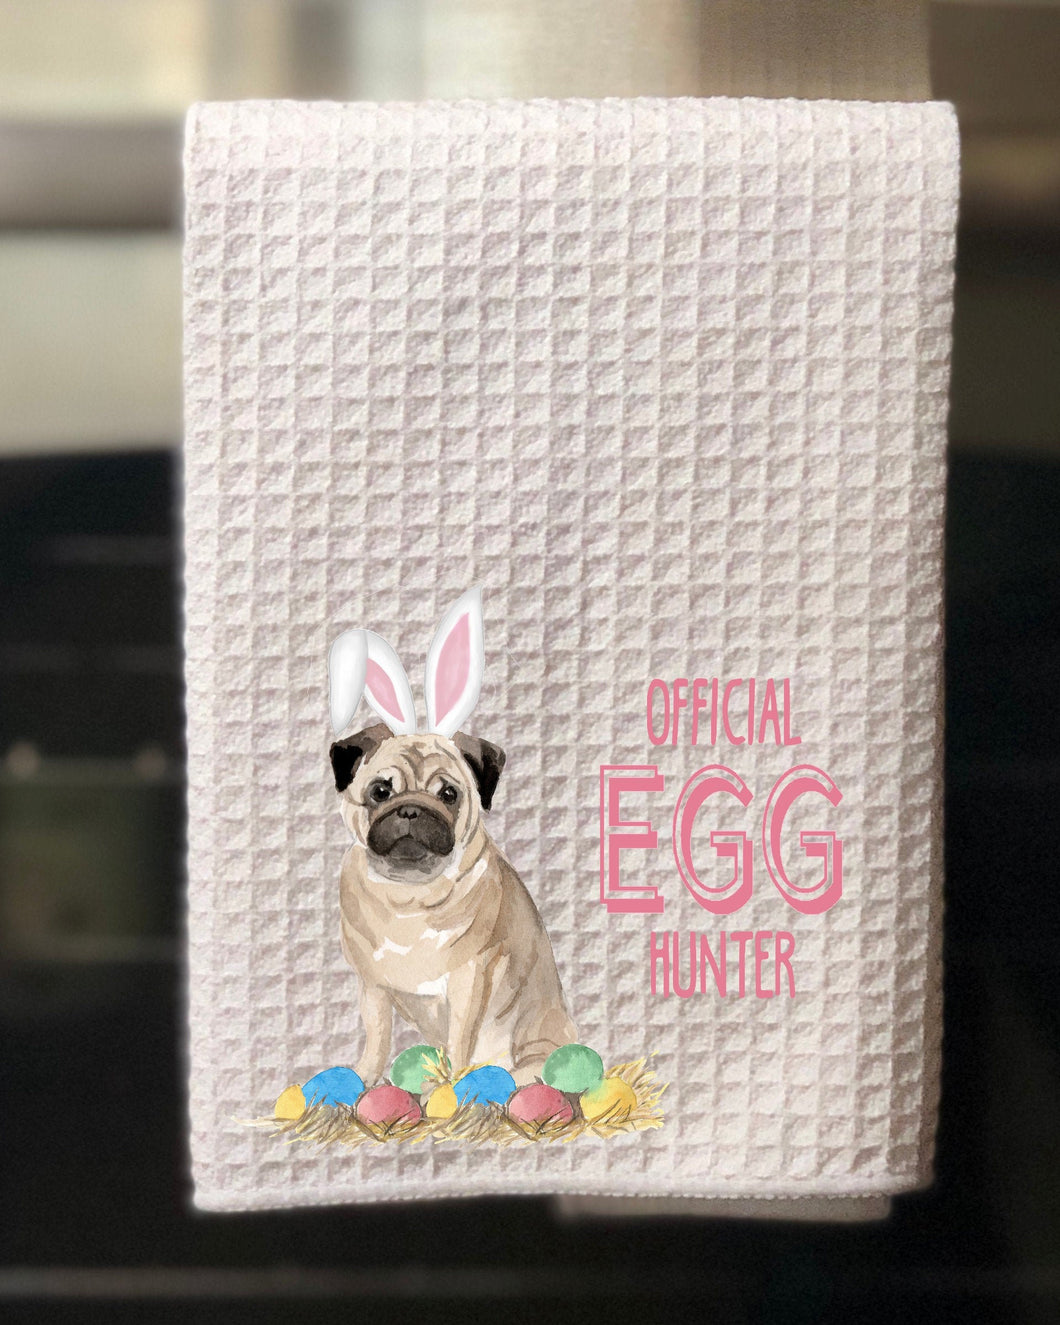 "Pug Official Egg Hunter Easter Kitchen Waffle Towel -15""x25"", Hostess Gift, Spring Towel"